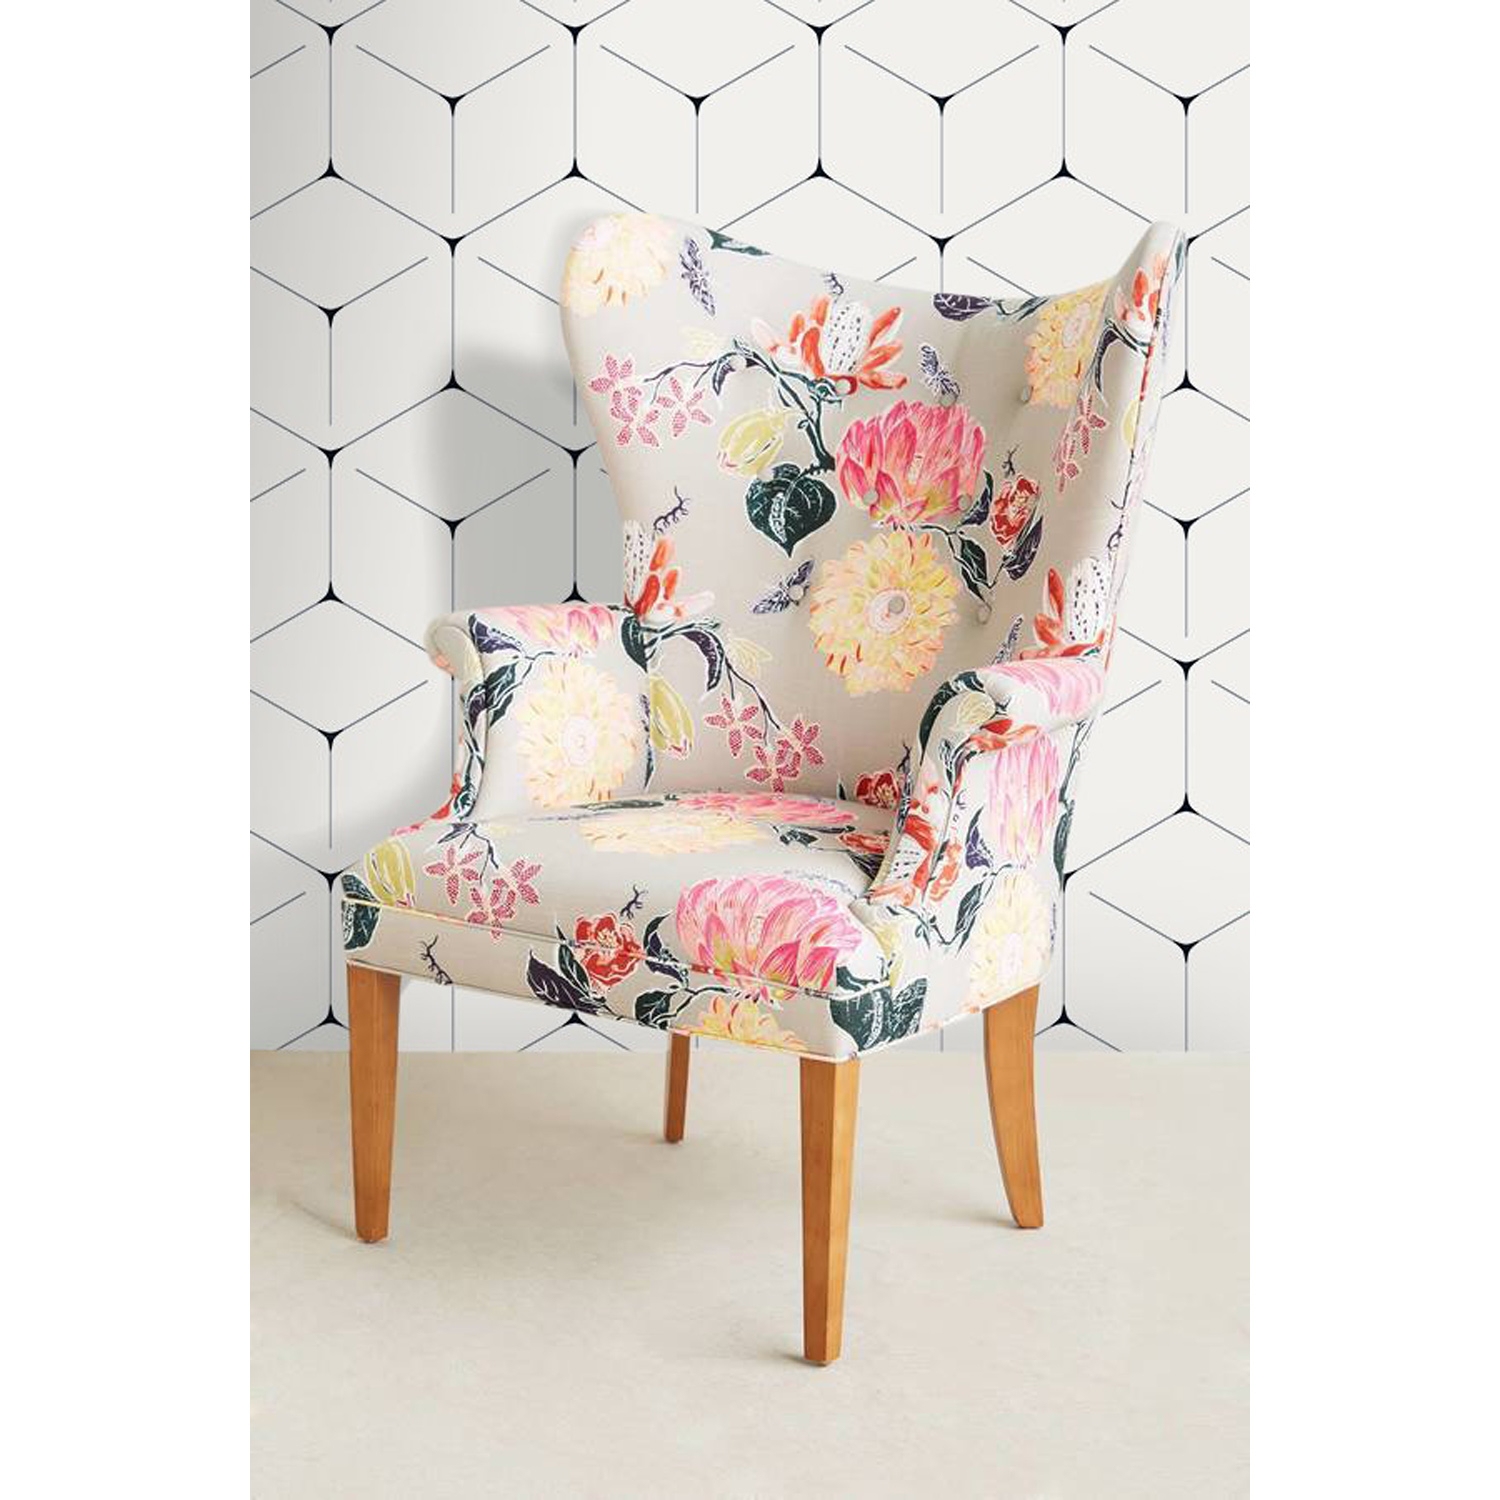 Unusual Accent Chairs Pattern.Floral Accent Chairs Ideas On Foter